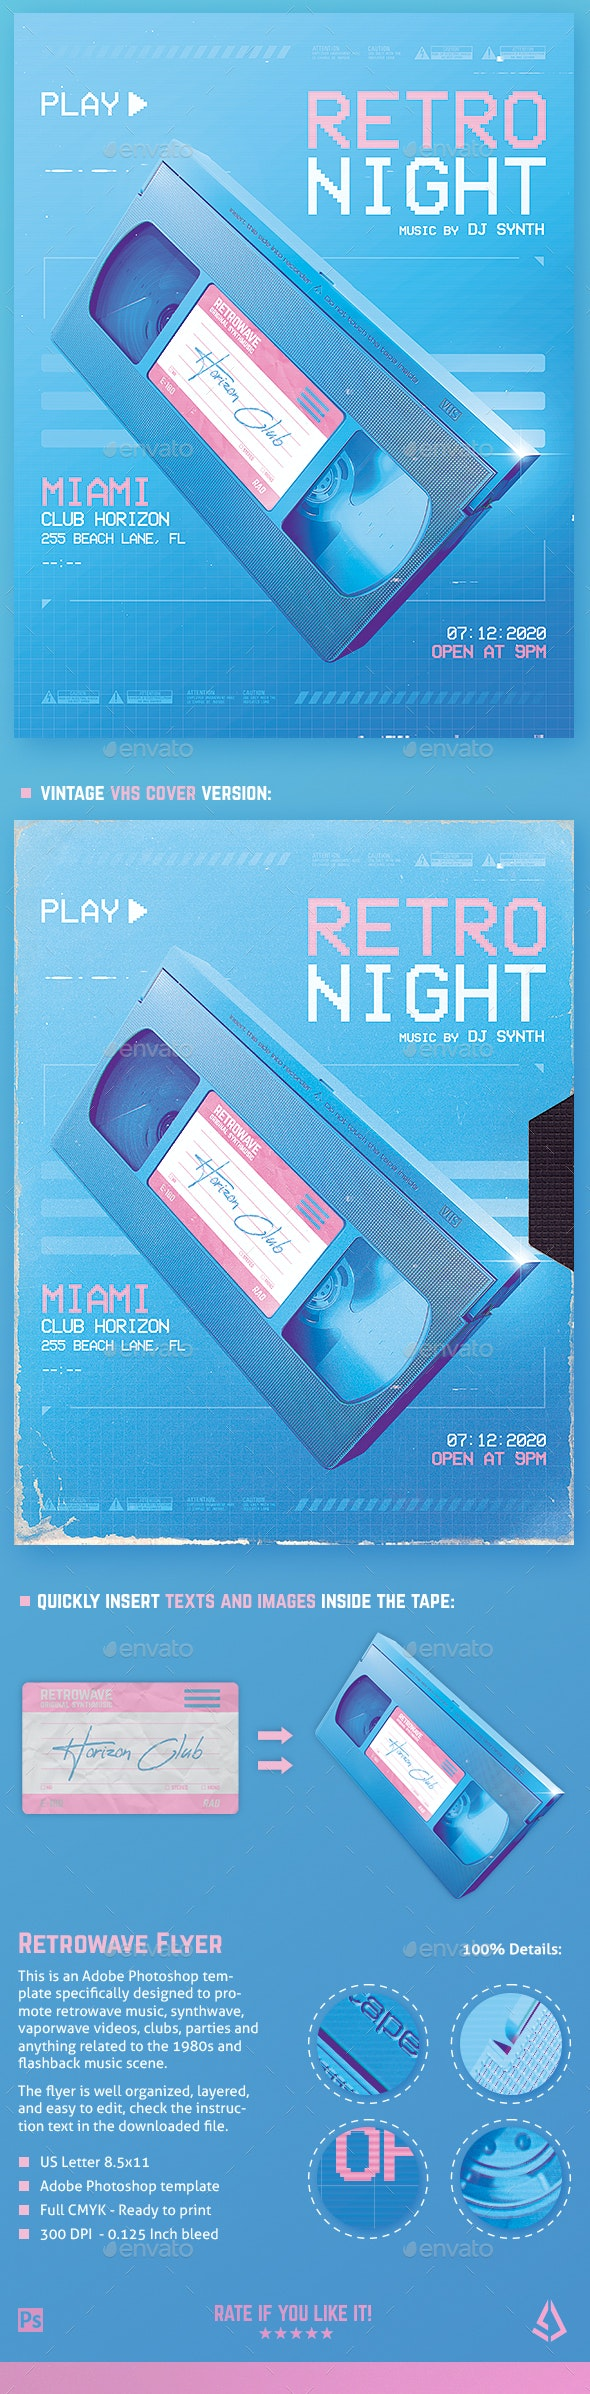 New Retro Wave Flyer 80s VHS Template v5 - Clubs & Parties Events